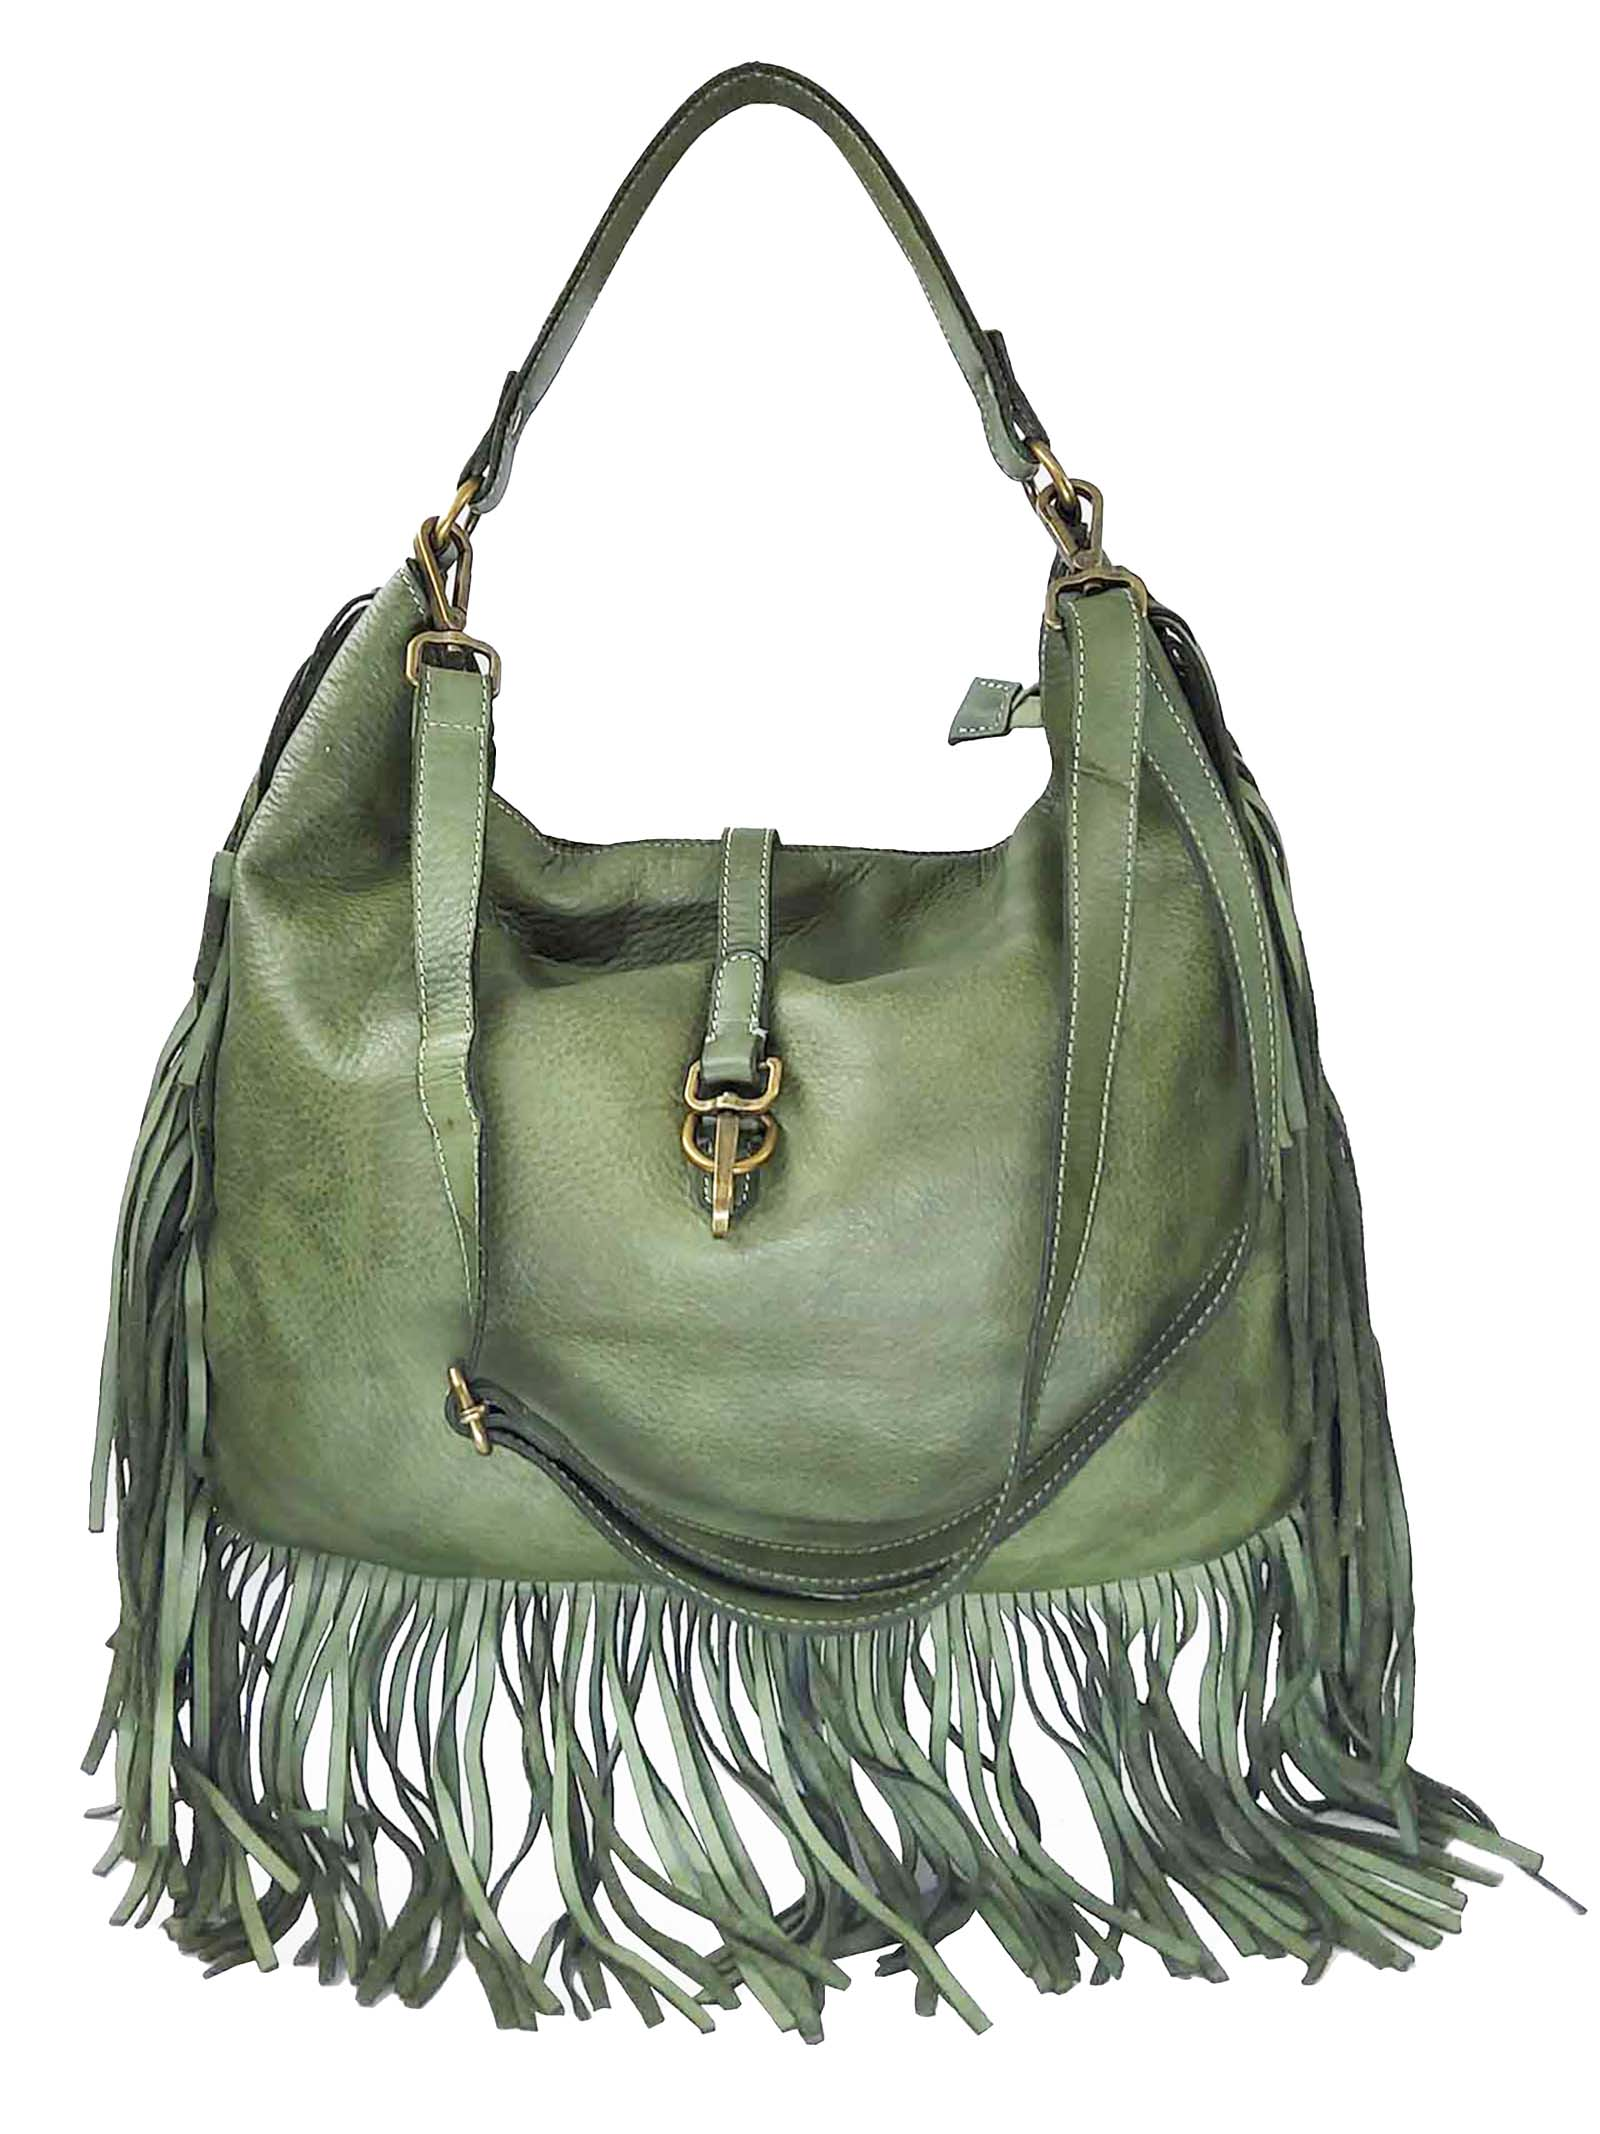 Women's Green Leather Shoulder Shopping Bags with Fringes and Removable Shoulder Strap Spatarella | Bags and backpacks | PE0207005